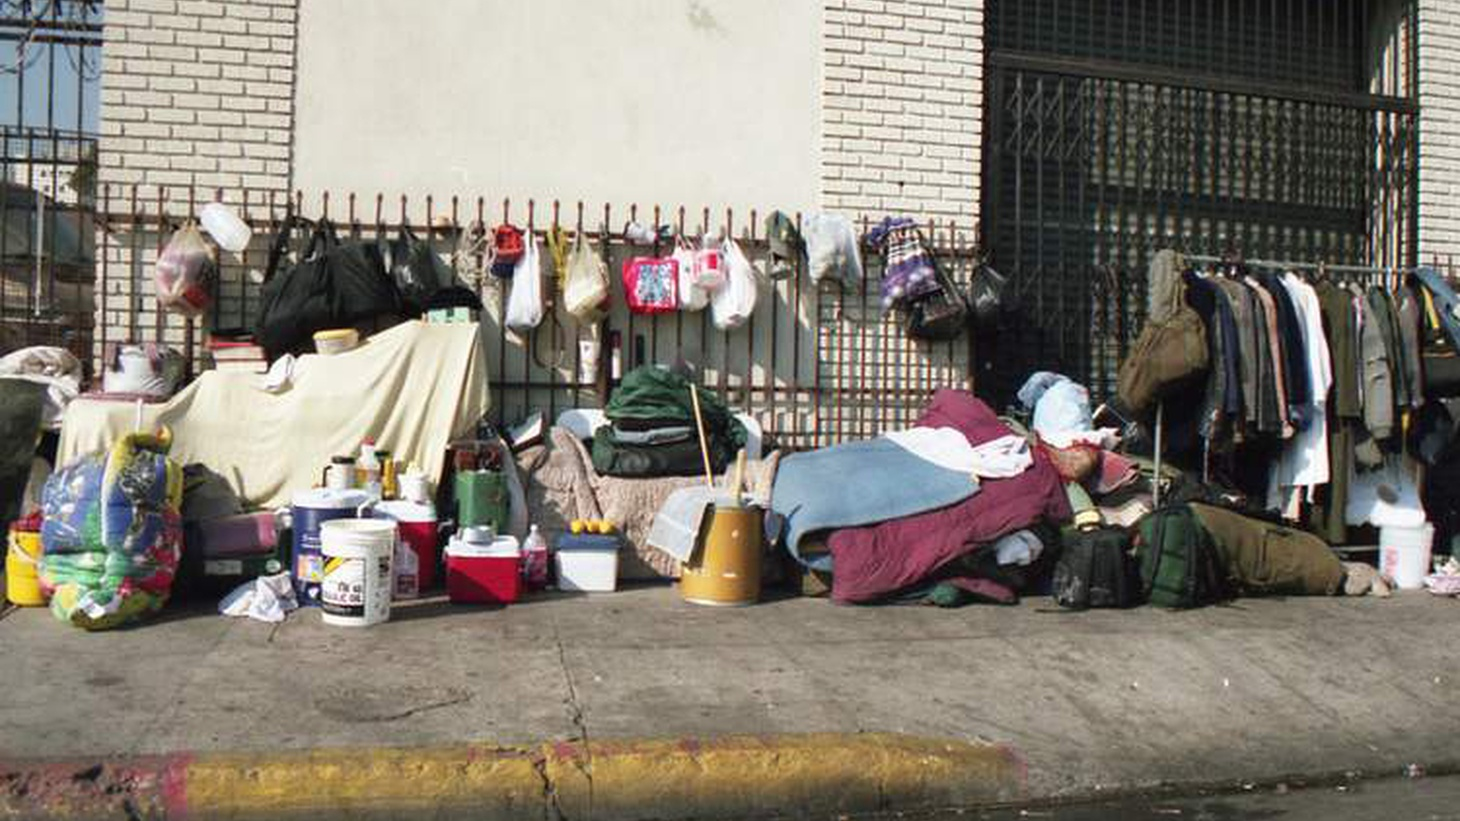 Homelessness is up this year across L.A. Mayor Eric Garcetti explains the city's ongoing strategy for dealing with the issue.